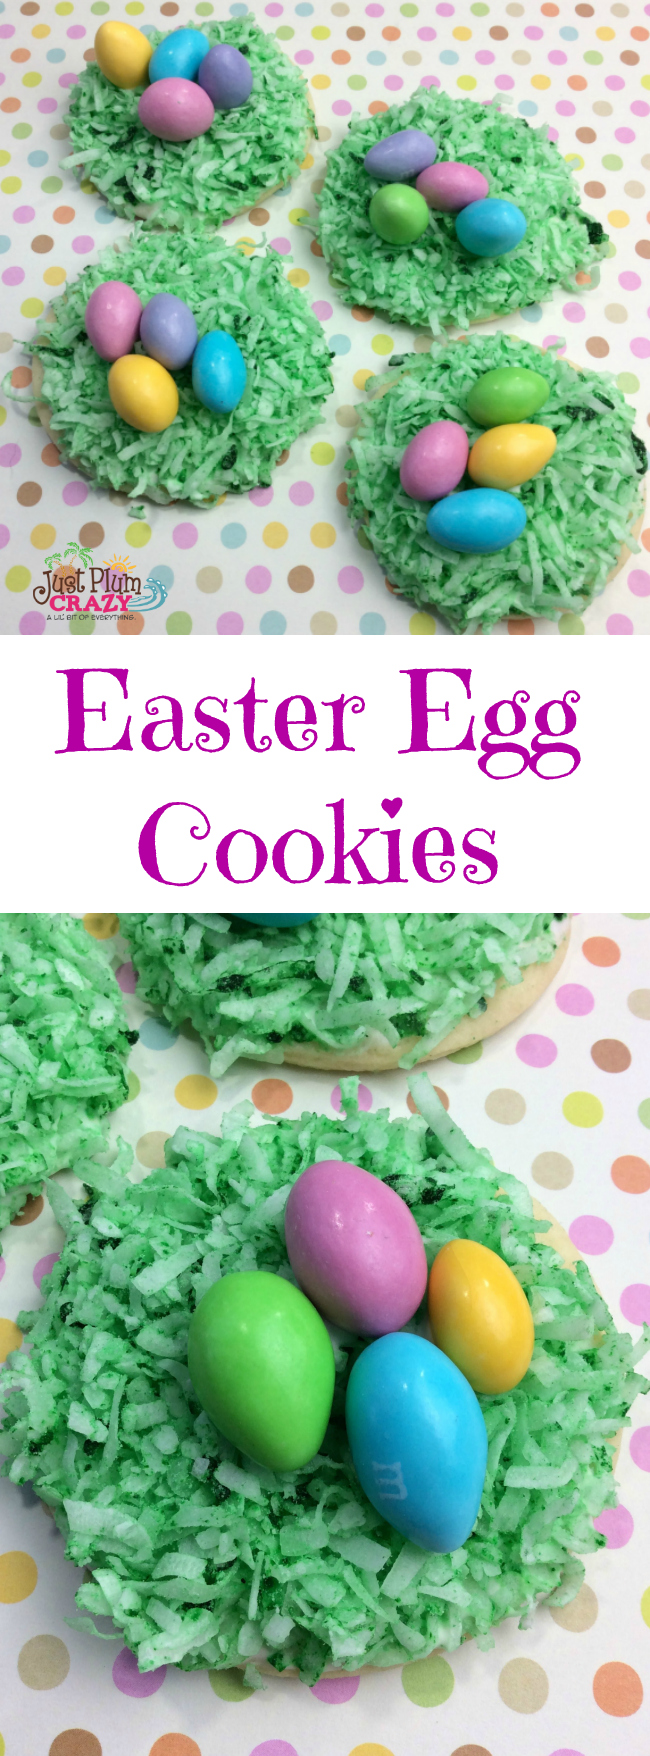 With Easter about a month away, the time will fly by & it will be here before we know it. Today we have Easter Egg Cookies recipe that are cute & tasty.